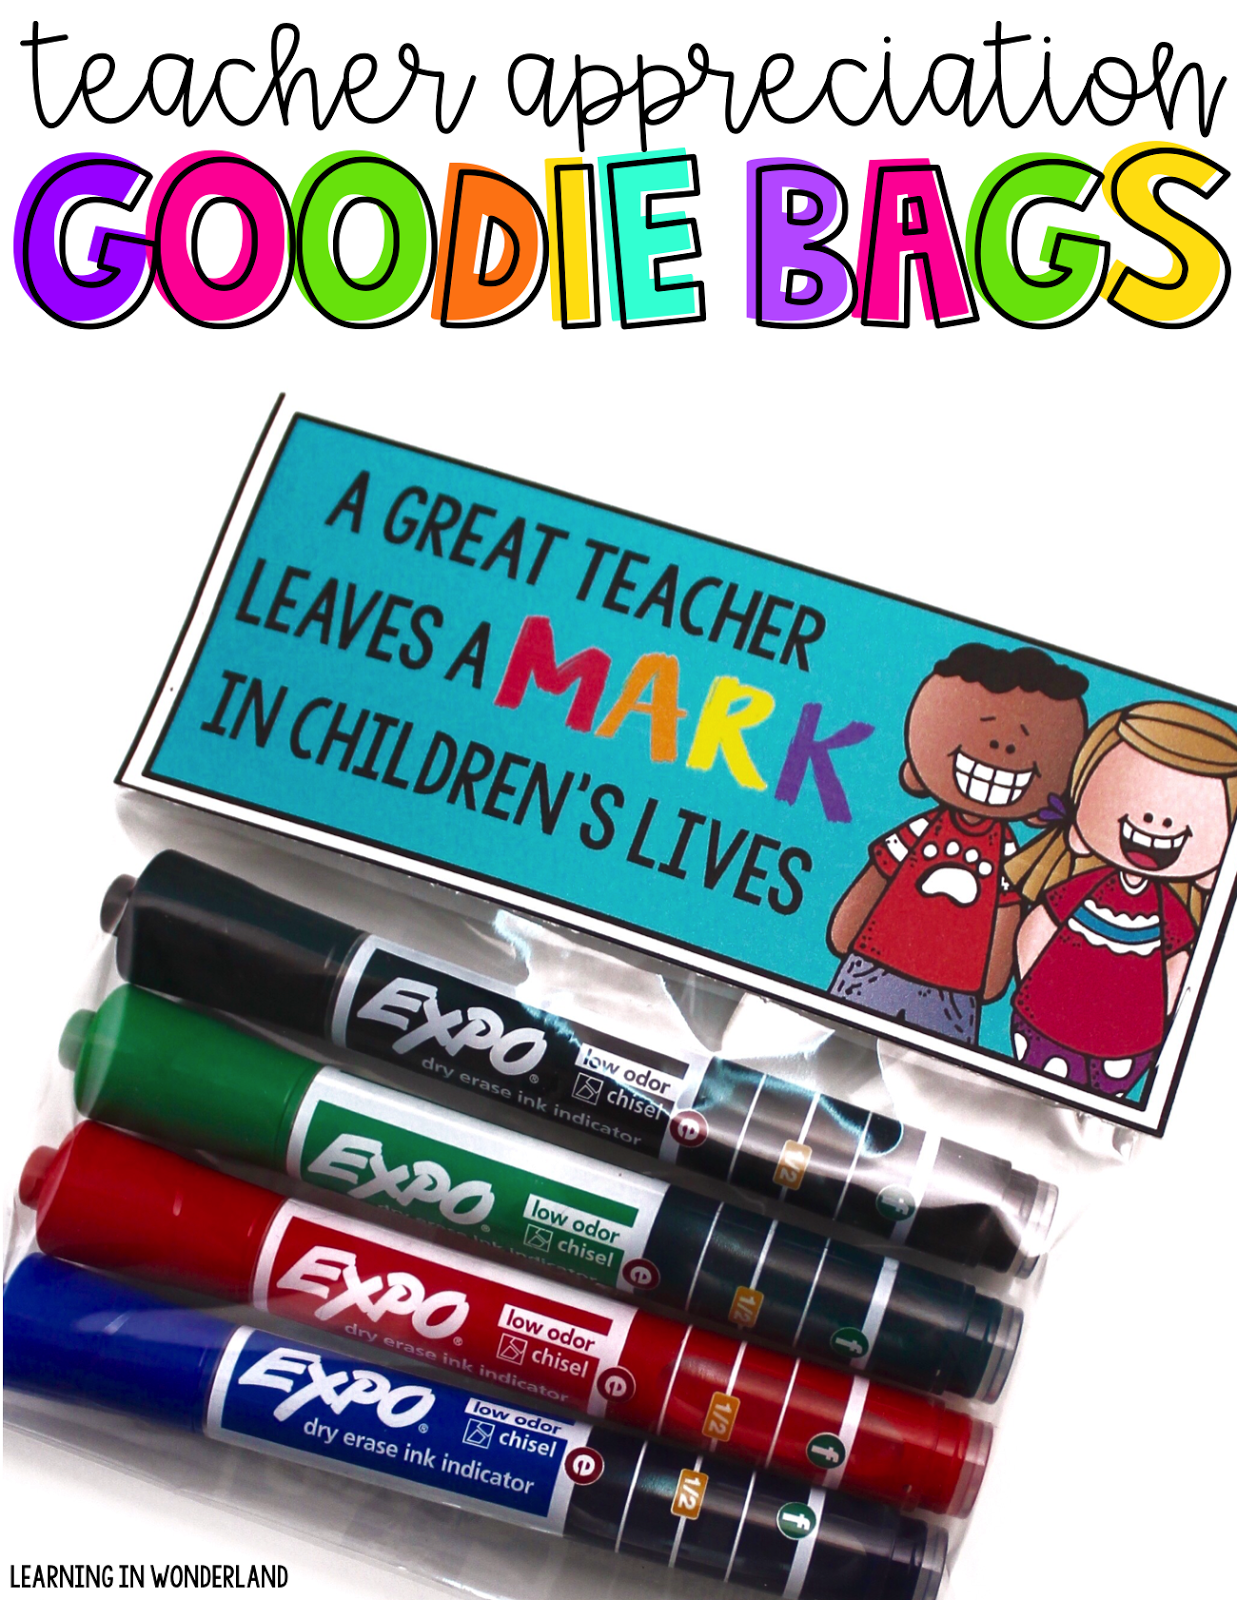 Free teacher goodie bag toppers! Great gift for teacher appreciation or BTS time!